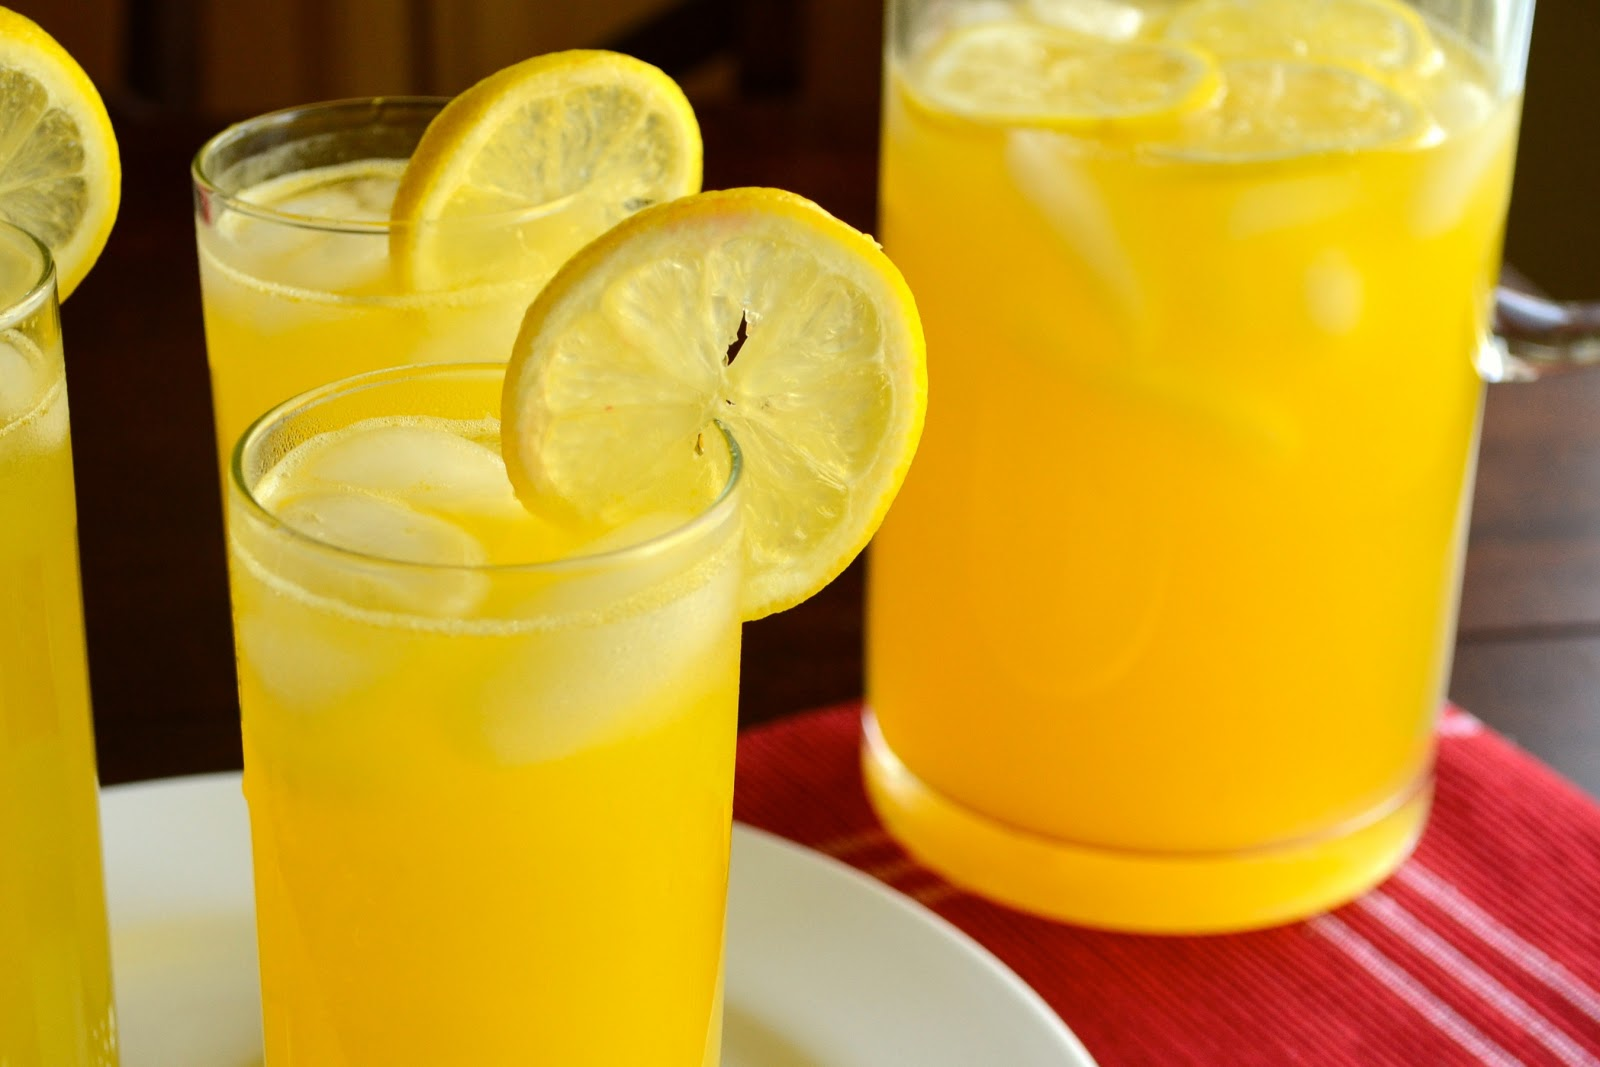 Lawyer Loves Lunch: Sparkling Mango Lemonade for Summer